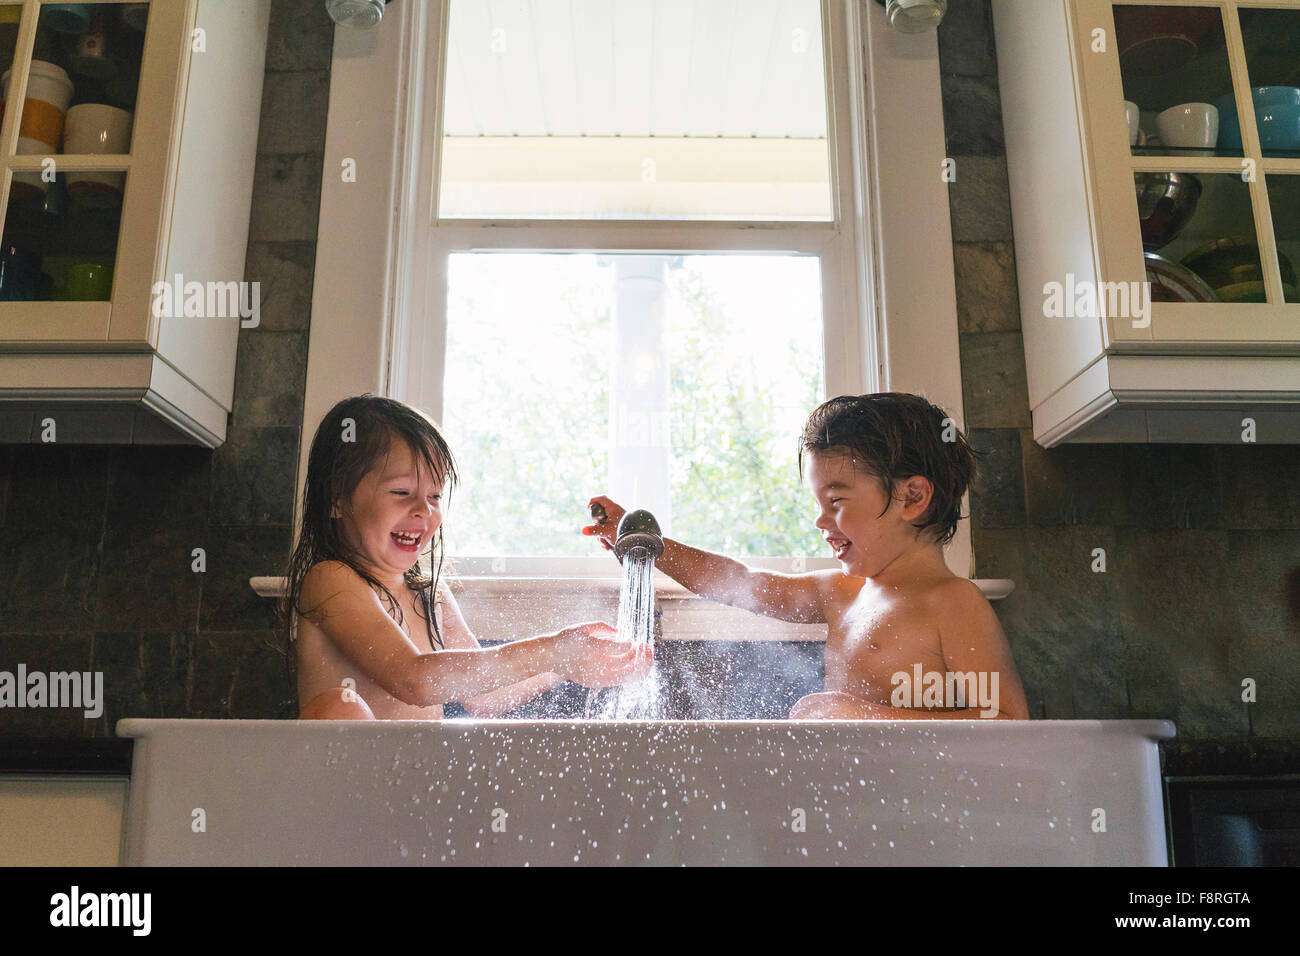 Young boy and girl sitting in kitchen sink playing with water - Stock Image